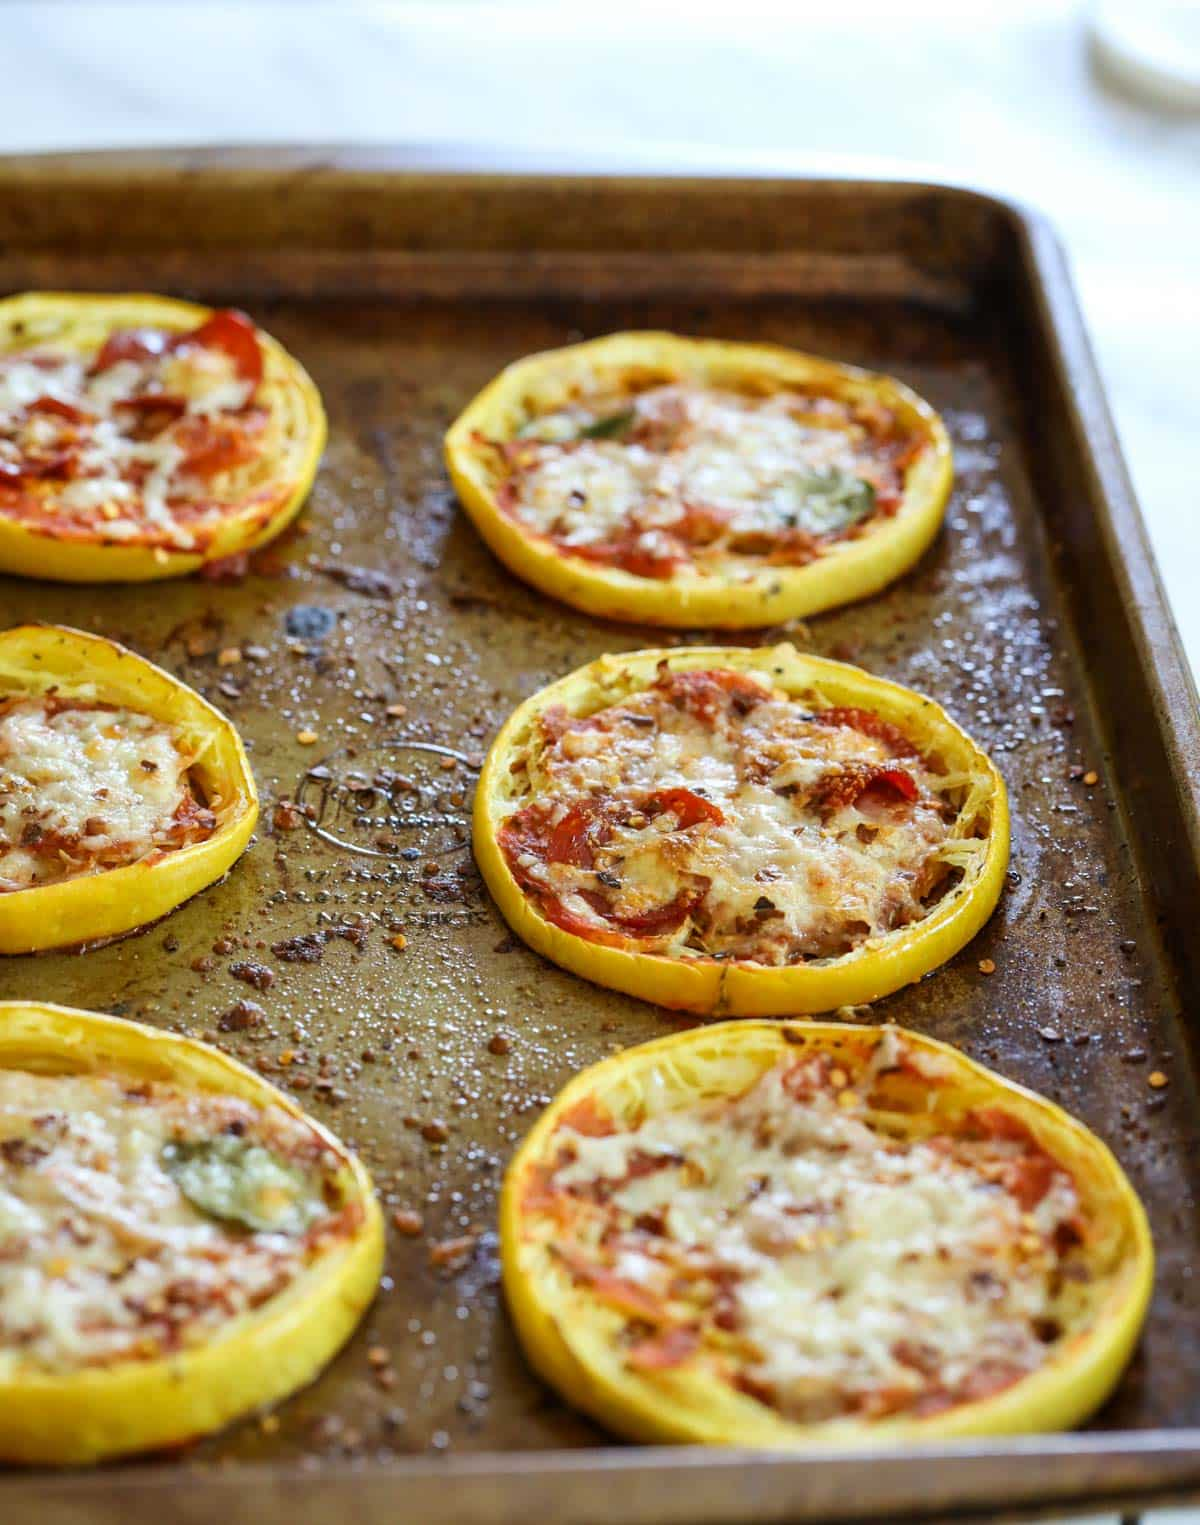 freshly baked squash pizza from the oven on a baking dish